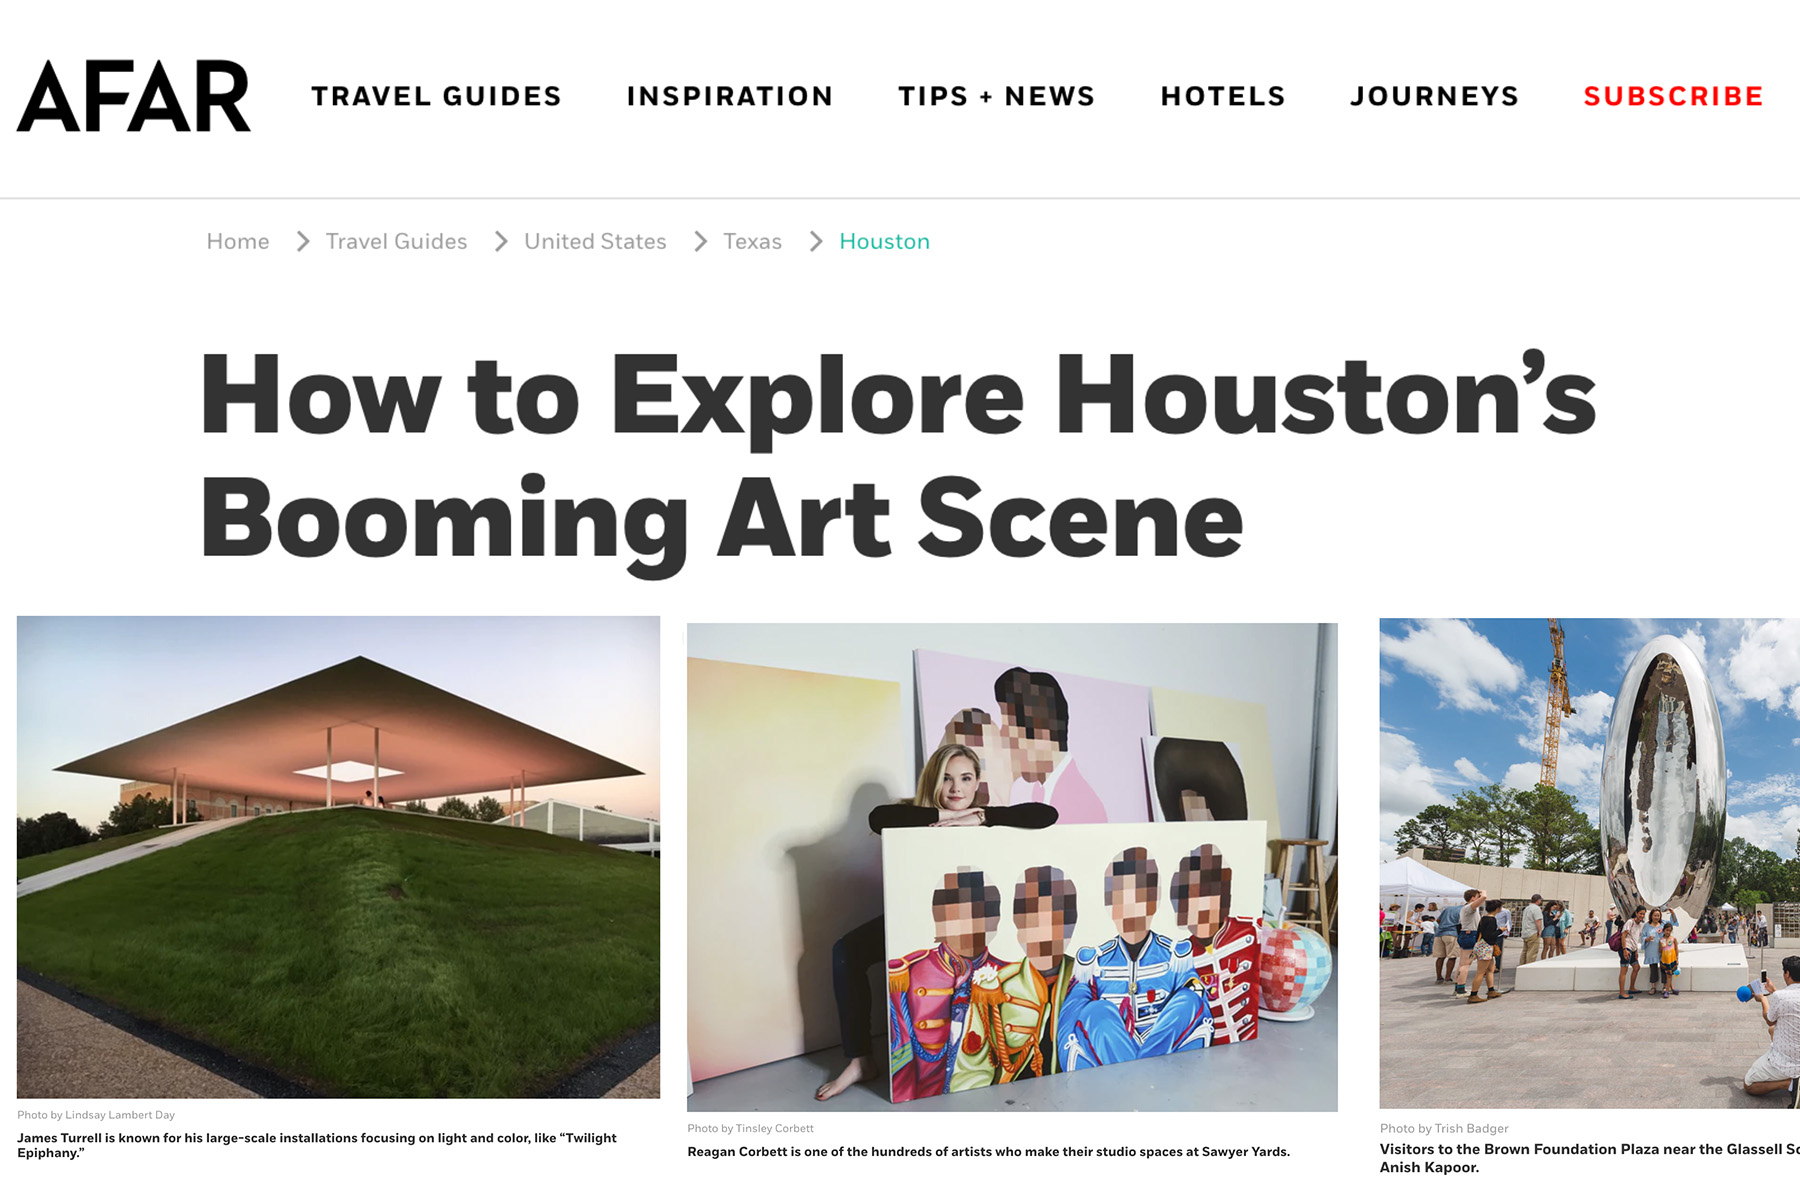 AFAR: How to Explore Houston's Booming Art Scene - When you think about great art cities in the United States,New York,Los Angeles,San Francisco, andMiamiprobably come to mind. ButHoustonis home to a robust arts scene of its own, with everything from colorful graffiti parks to modern museums. If that comes as a surprise, you're not alone.Lindsay Lambert Day | March 2019